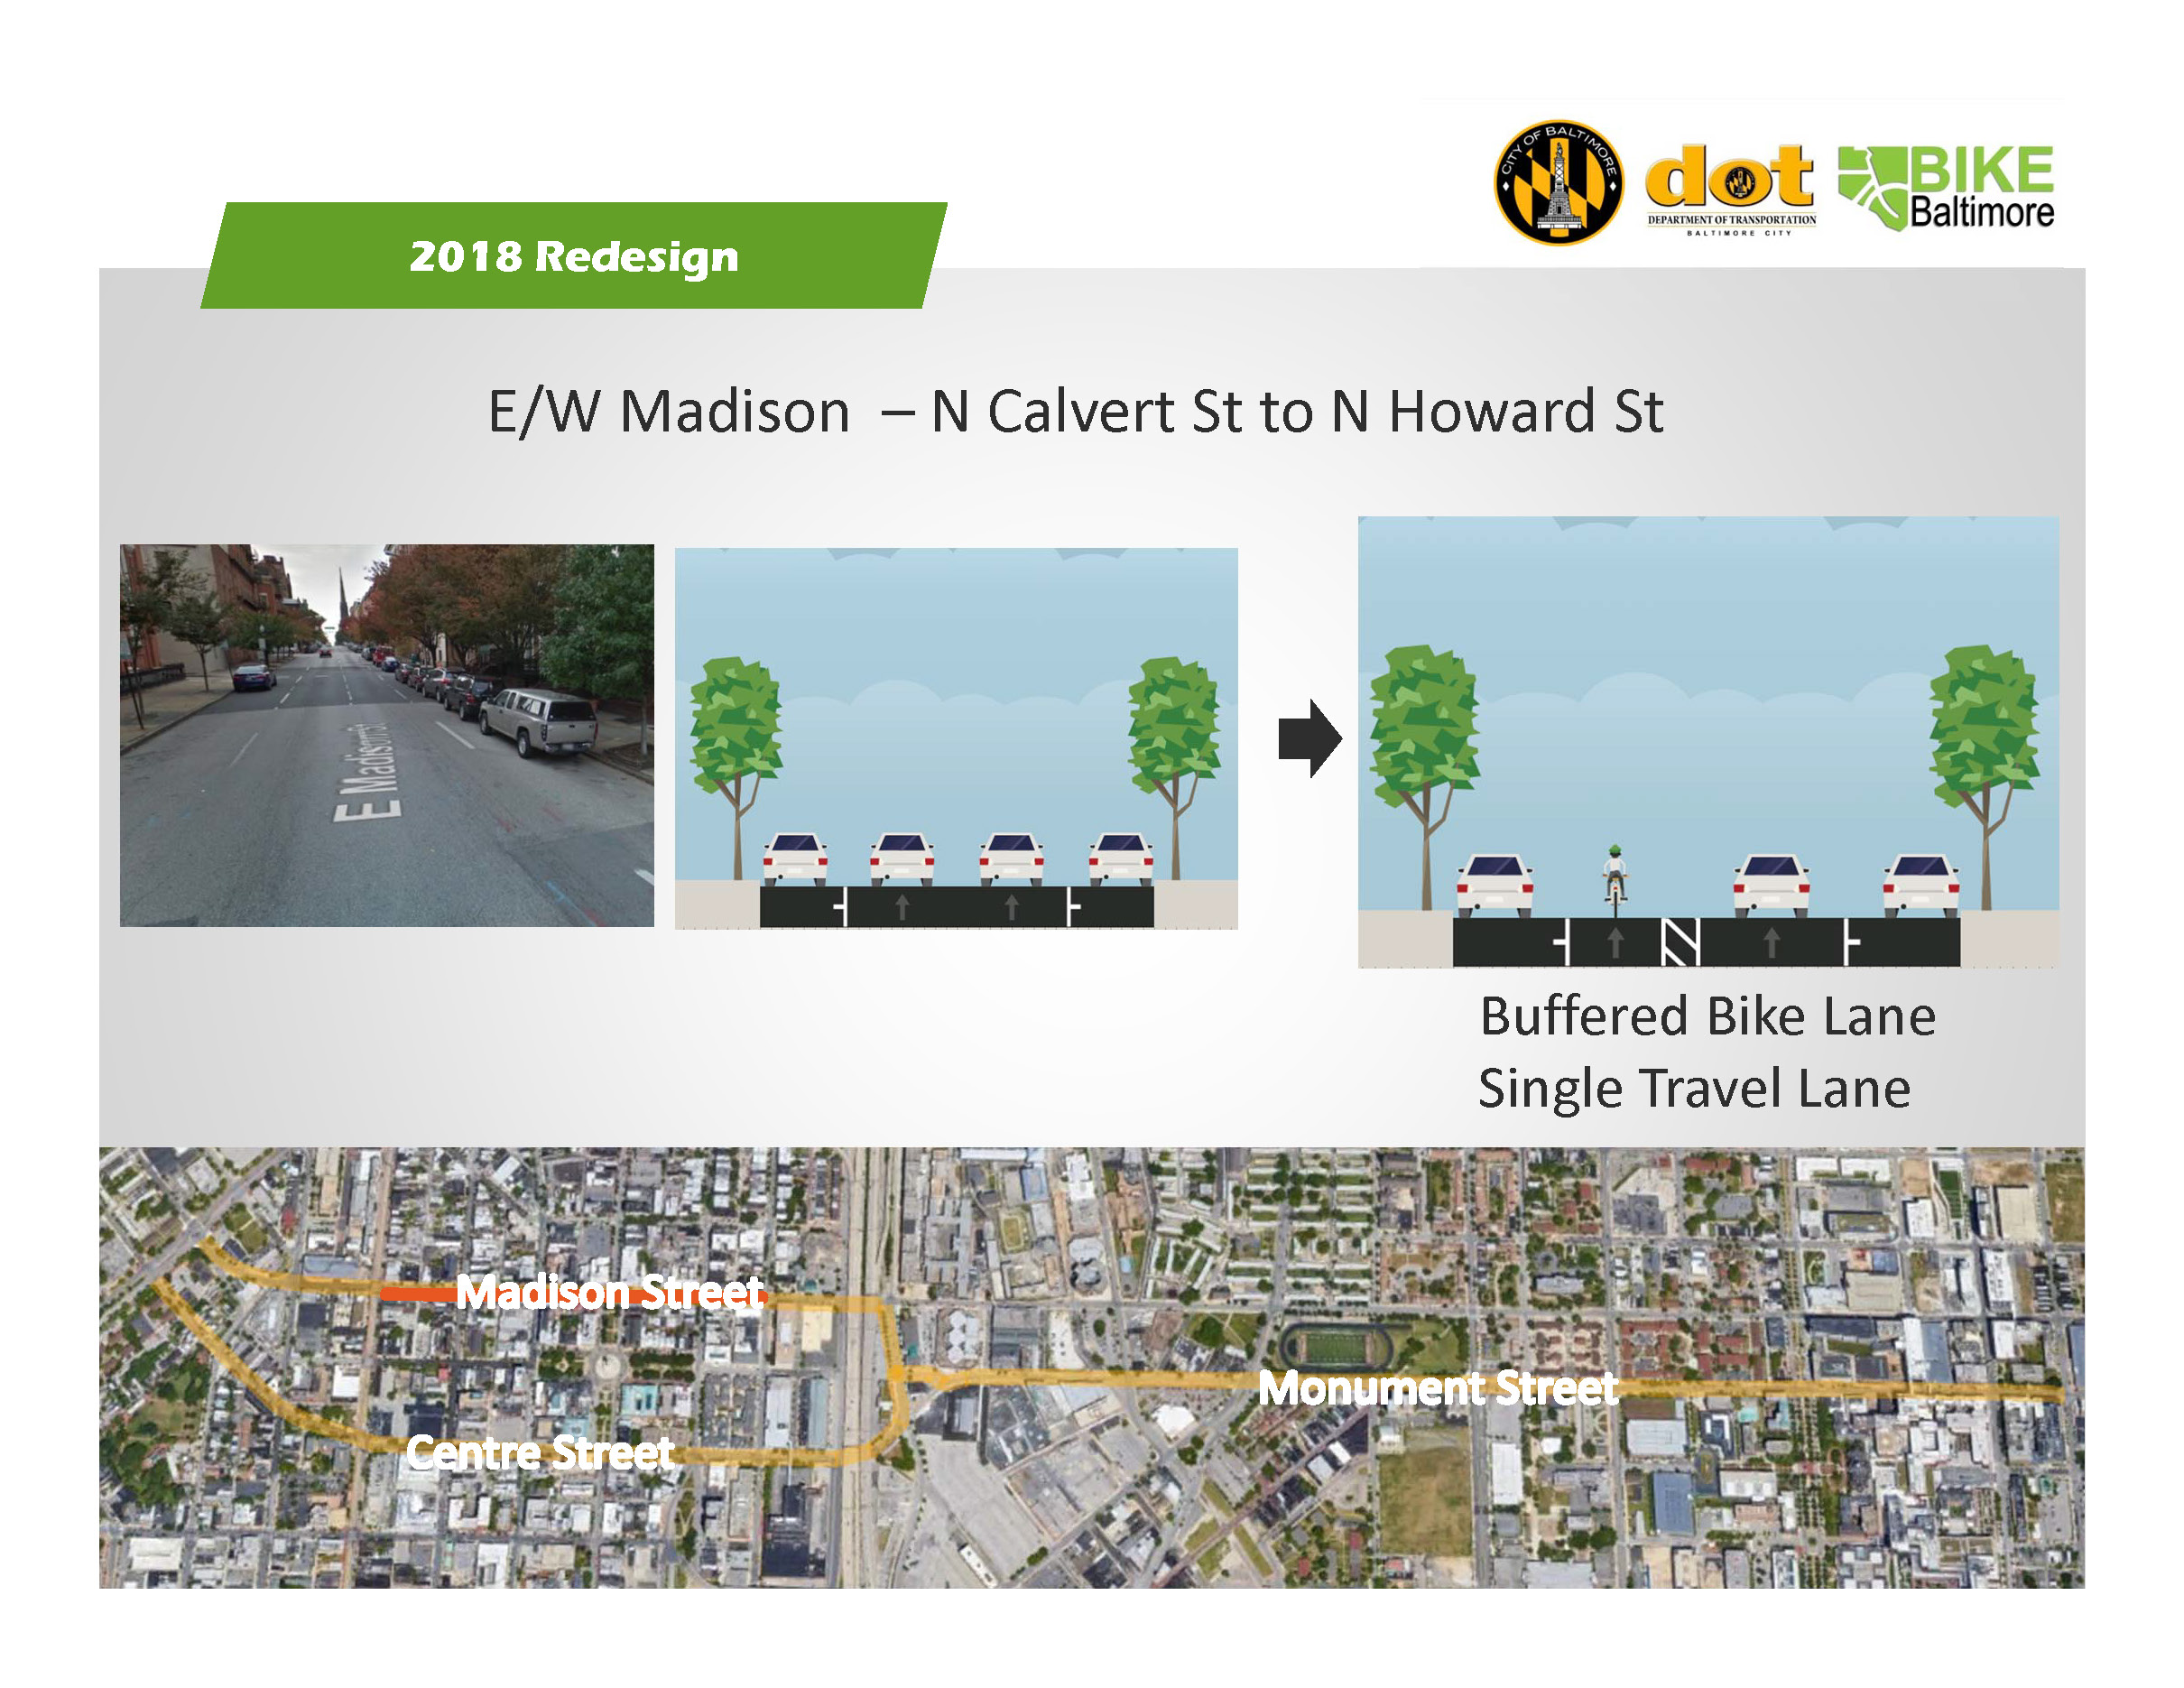 Microsoft PowerPoint - Downtown Bike Network Public Stakeholder Meeting 05.11.2018_Page_10.jpg